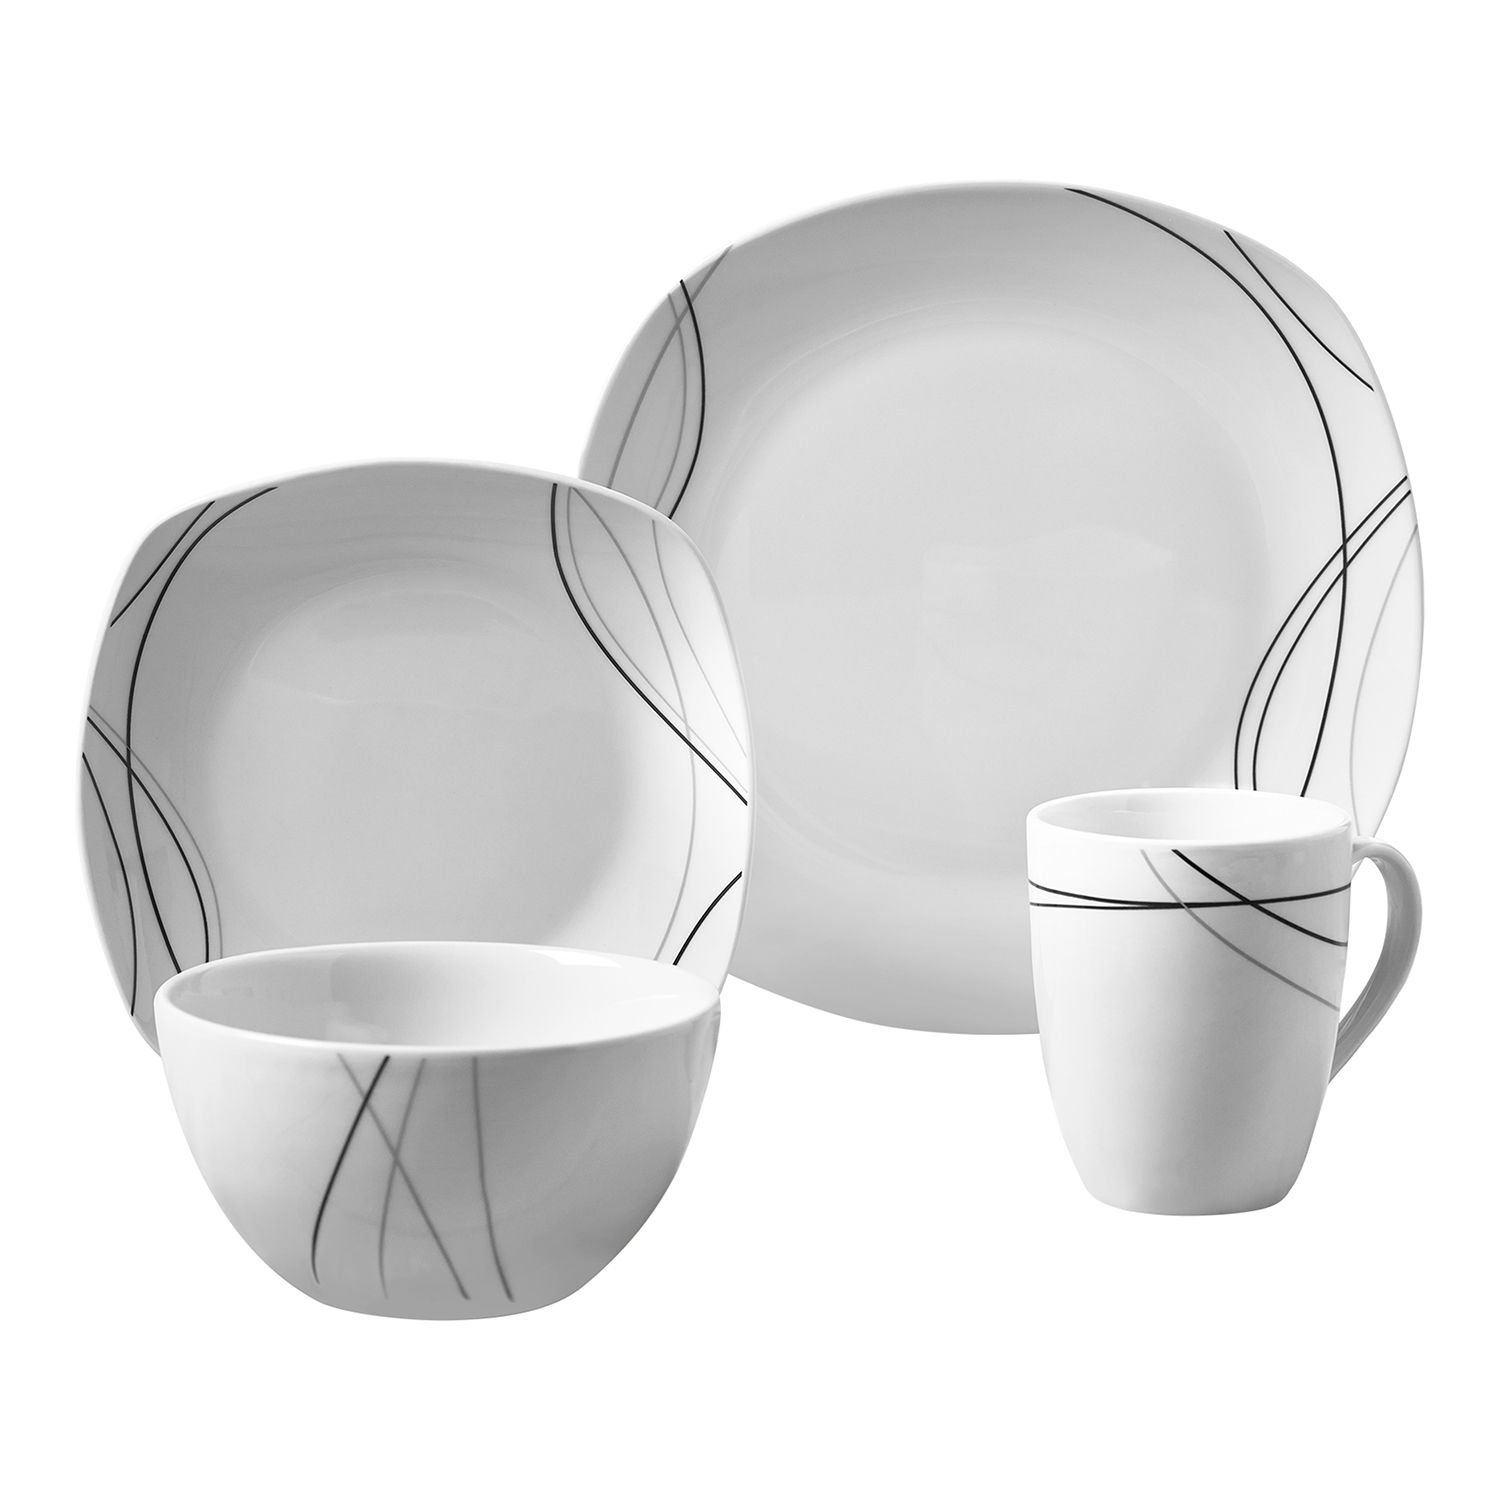 Soft Square Dinnerware Set  sc 1 st  Kohlu0027s & Gallery Alec 16-pc. Soft Square Dinnerware Set